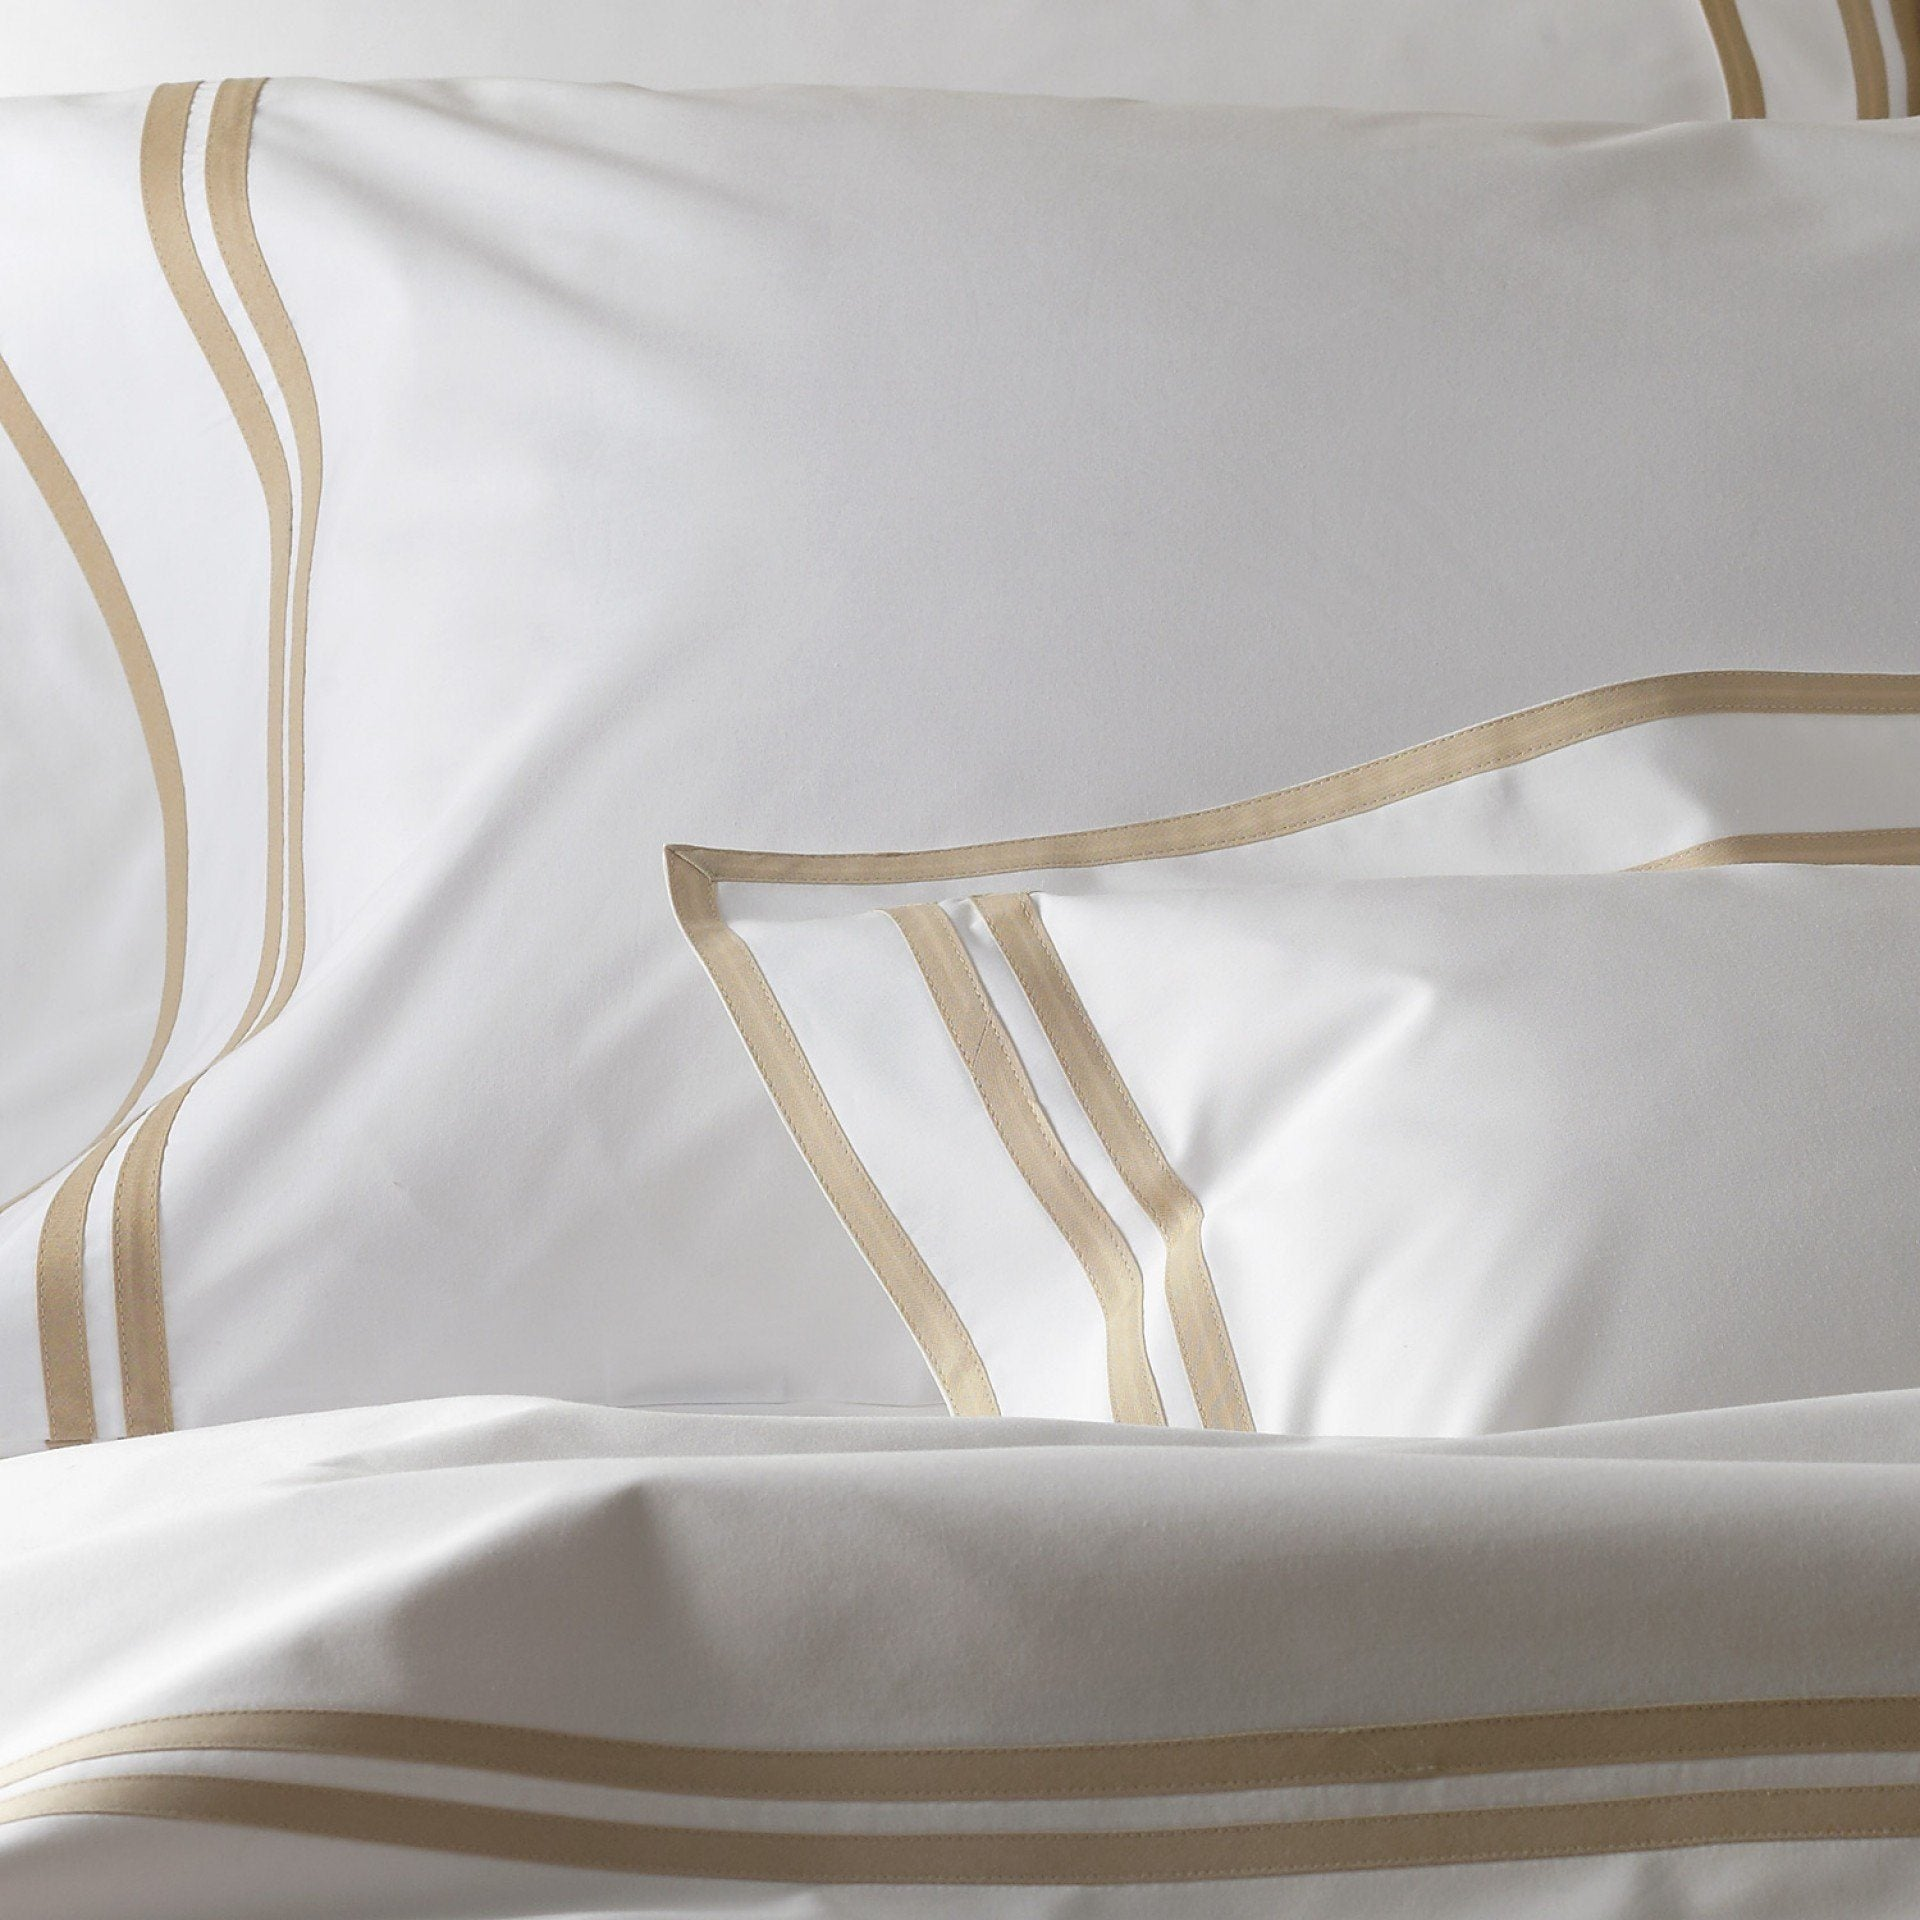 Meridian Sierra Percale Luxury Bedding by Matouk - Fig Linens and Home